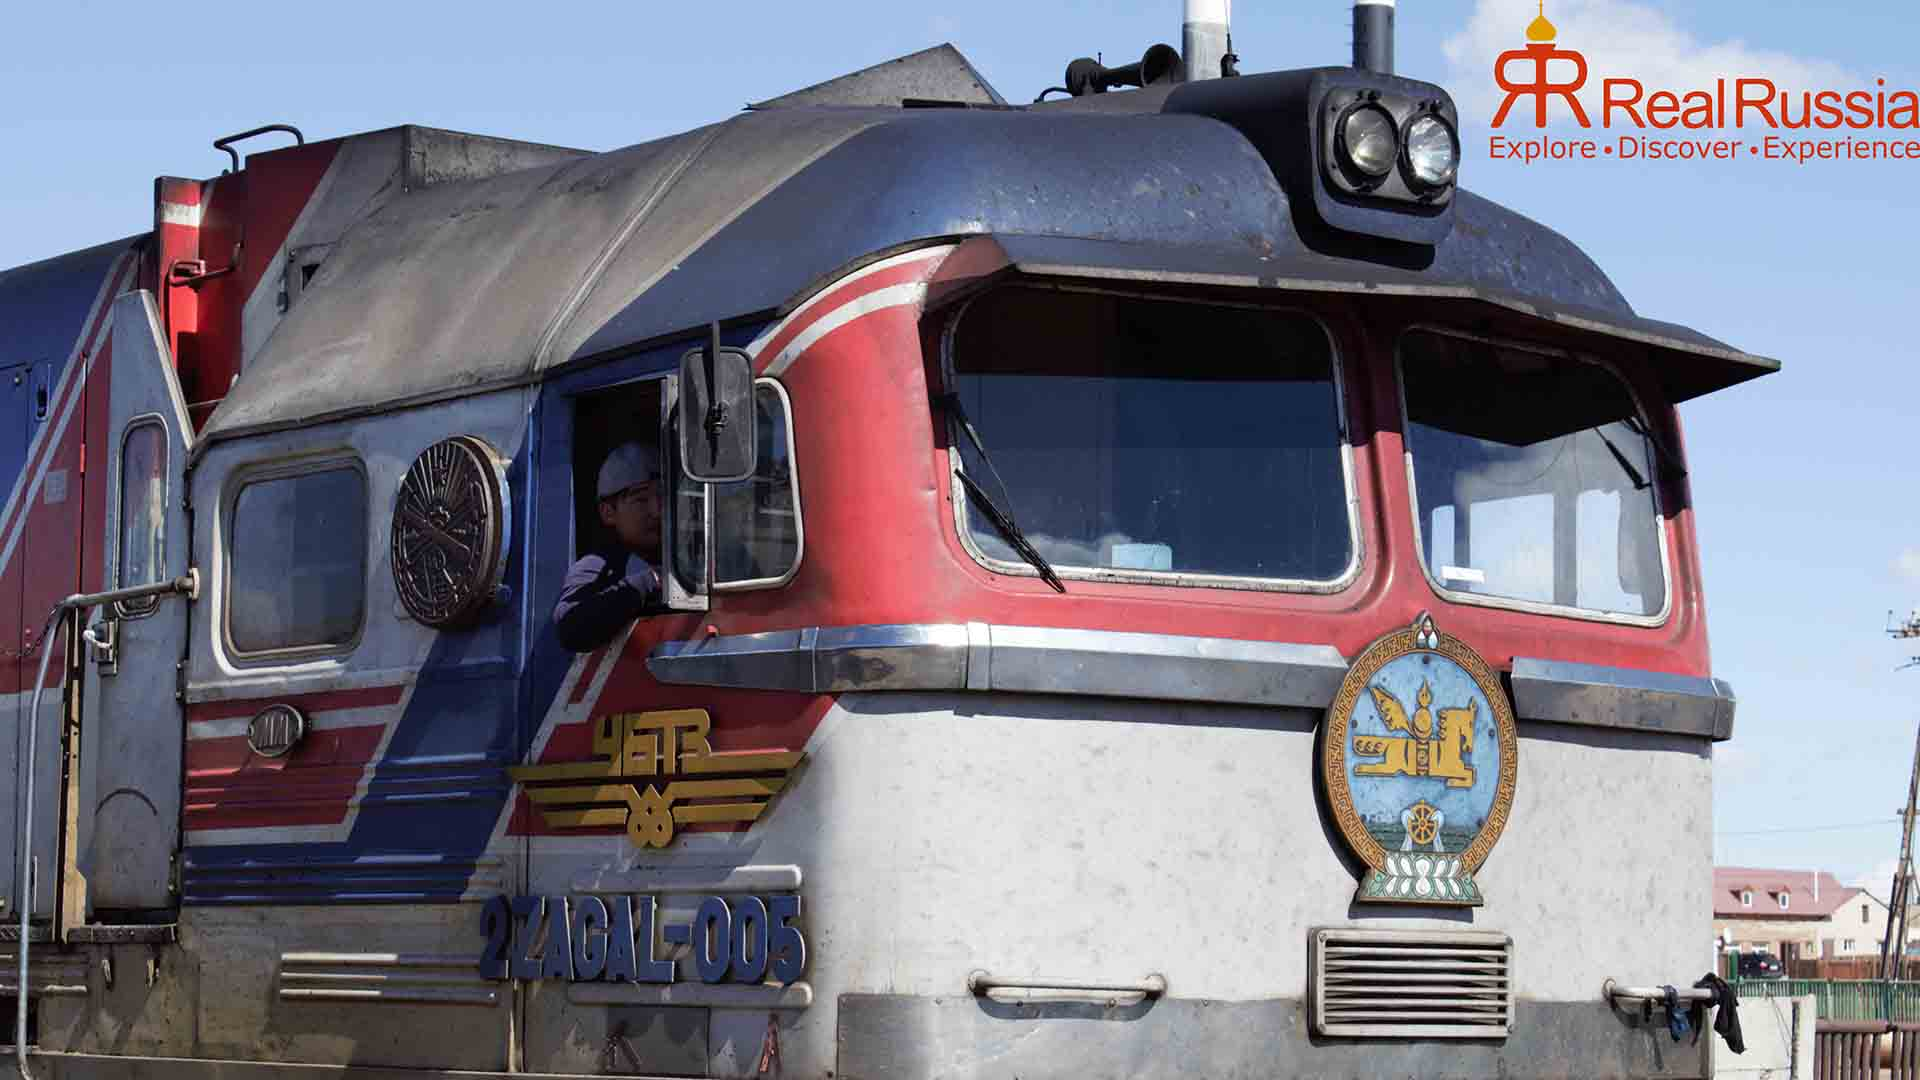 A Mongolian train on the border with Russia